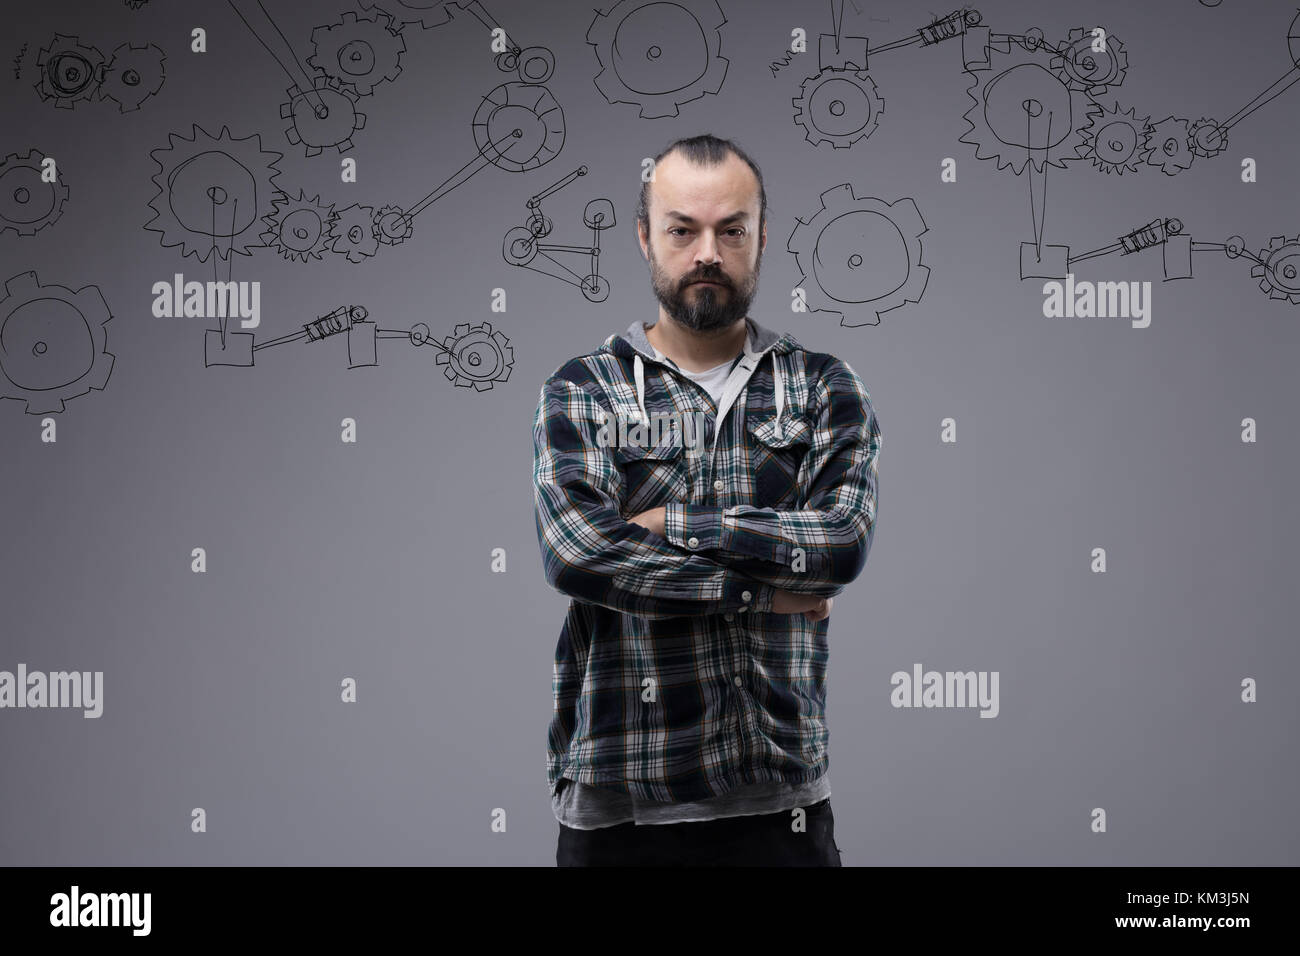 Confident bearded man with folded arms and a deadpan expression standing staring directly at the camera in an upper - Stock Image